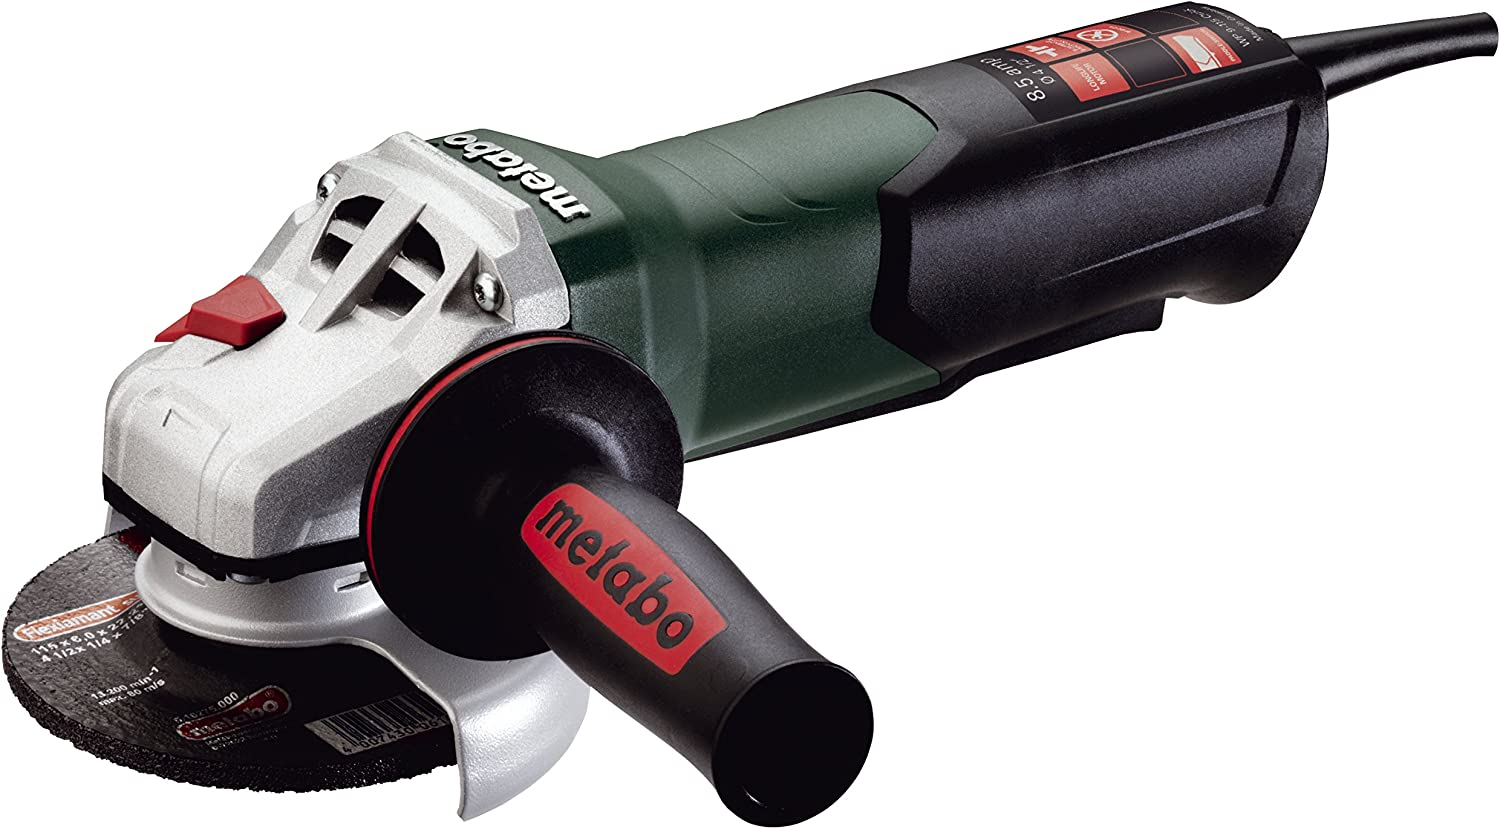 Metabo- 4.5&Quot; Angle Grinder - 10, 500 Rpm - 8.5 Amp W/Non-Lock Paddle (600380420 9-115 Quick), Professional Angle Grinders